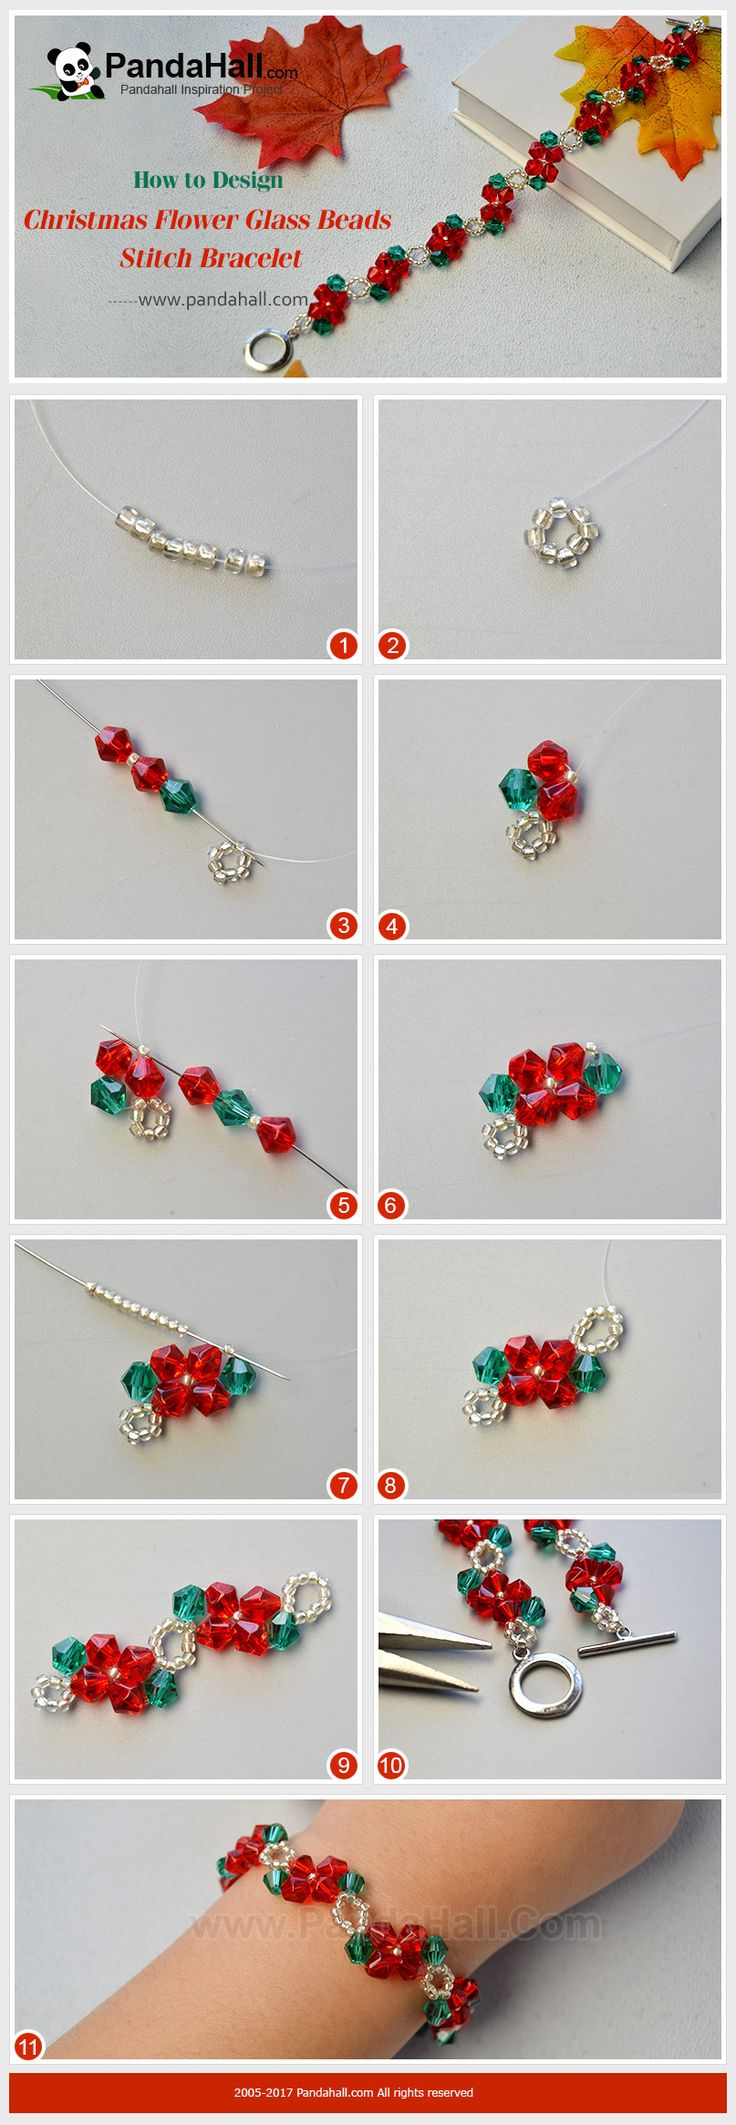 PandaHall Christmas Gift----Christmas Flower Glass Beads Stitch Bracelet Do you wanna make your Christmas special? Then you can make this flower glass beads stitch bracelet for yourself or friends as gifts. Follow me to give a nice shot! #PandaHall #bracelet #jewelry #Christmasjewelrymaking #tutorial #diy #craft #glassbeads